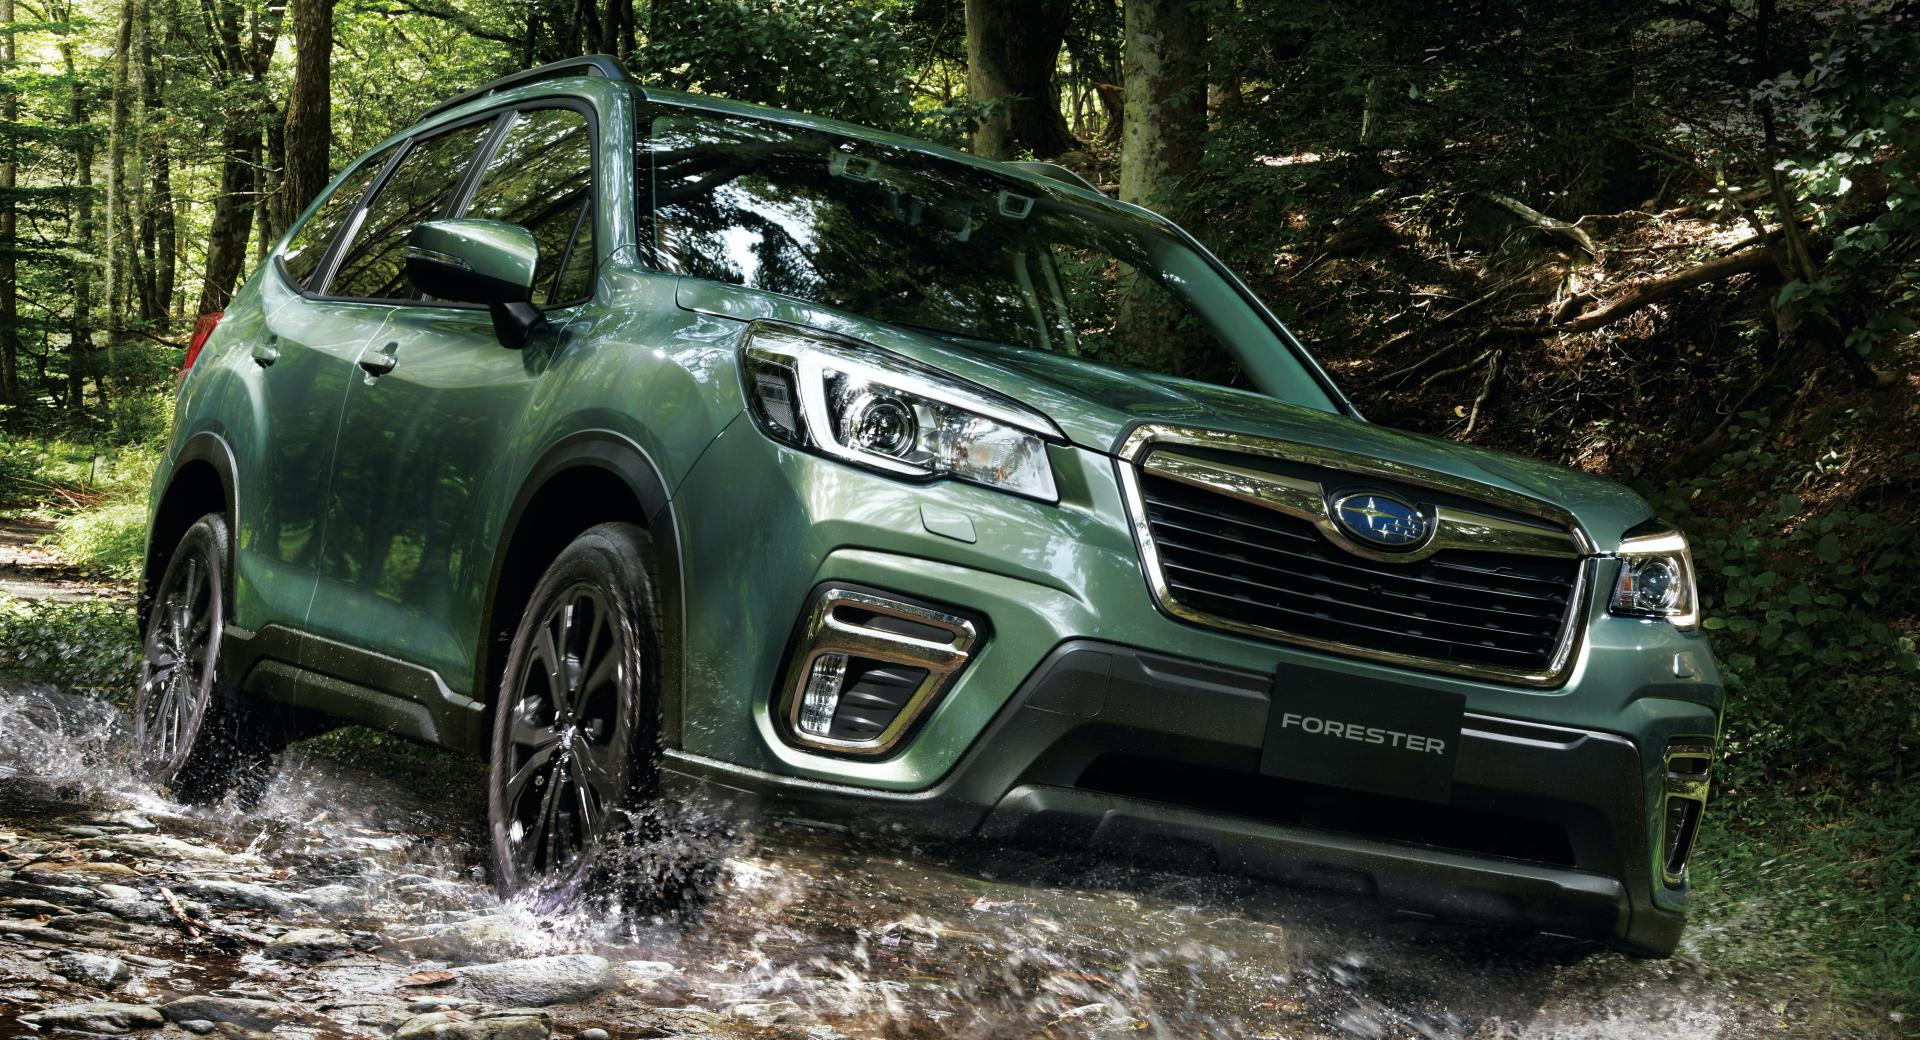 Japan's Subaru Forester X-Edition Special Not Afraid To Get - 2022 Subaru Forester Off Road Performance, Release Date, Specs